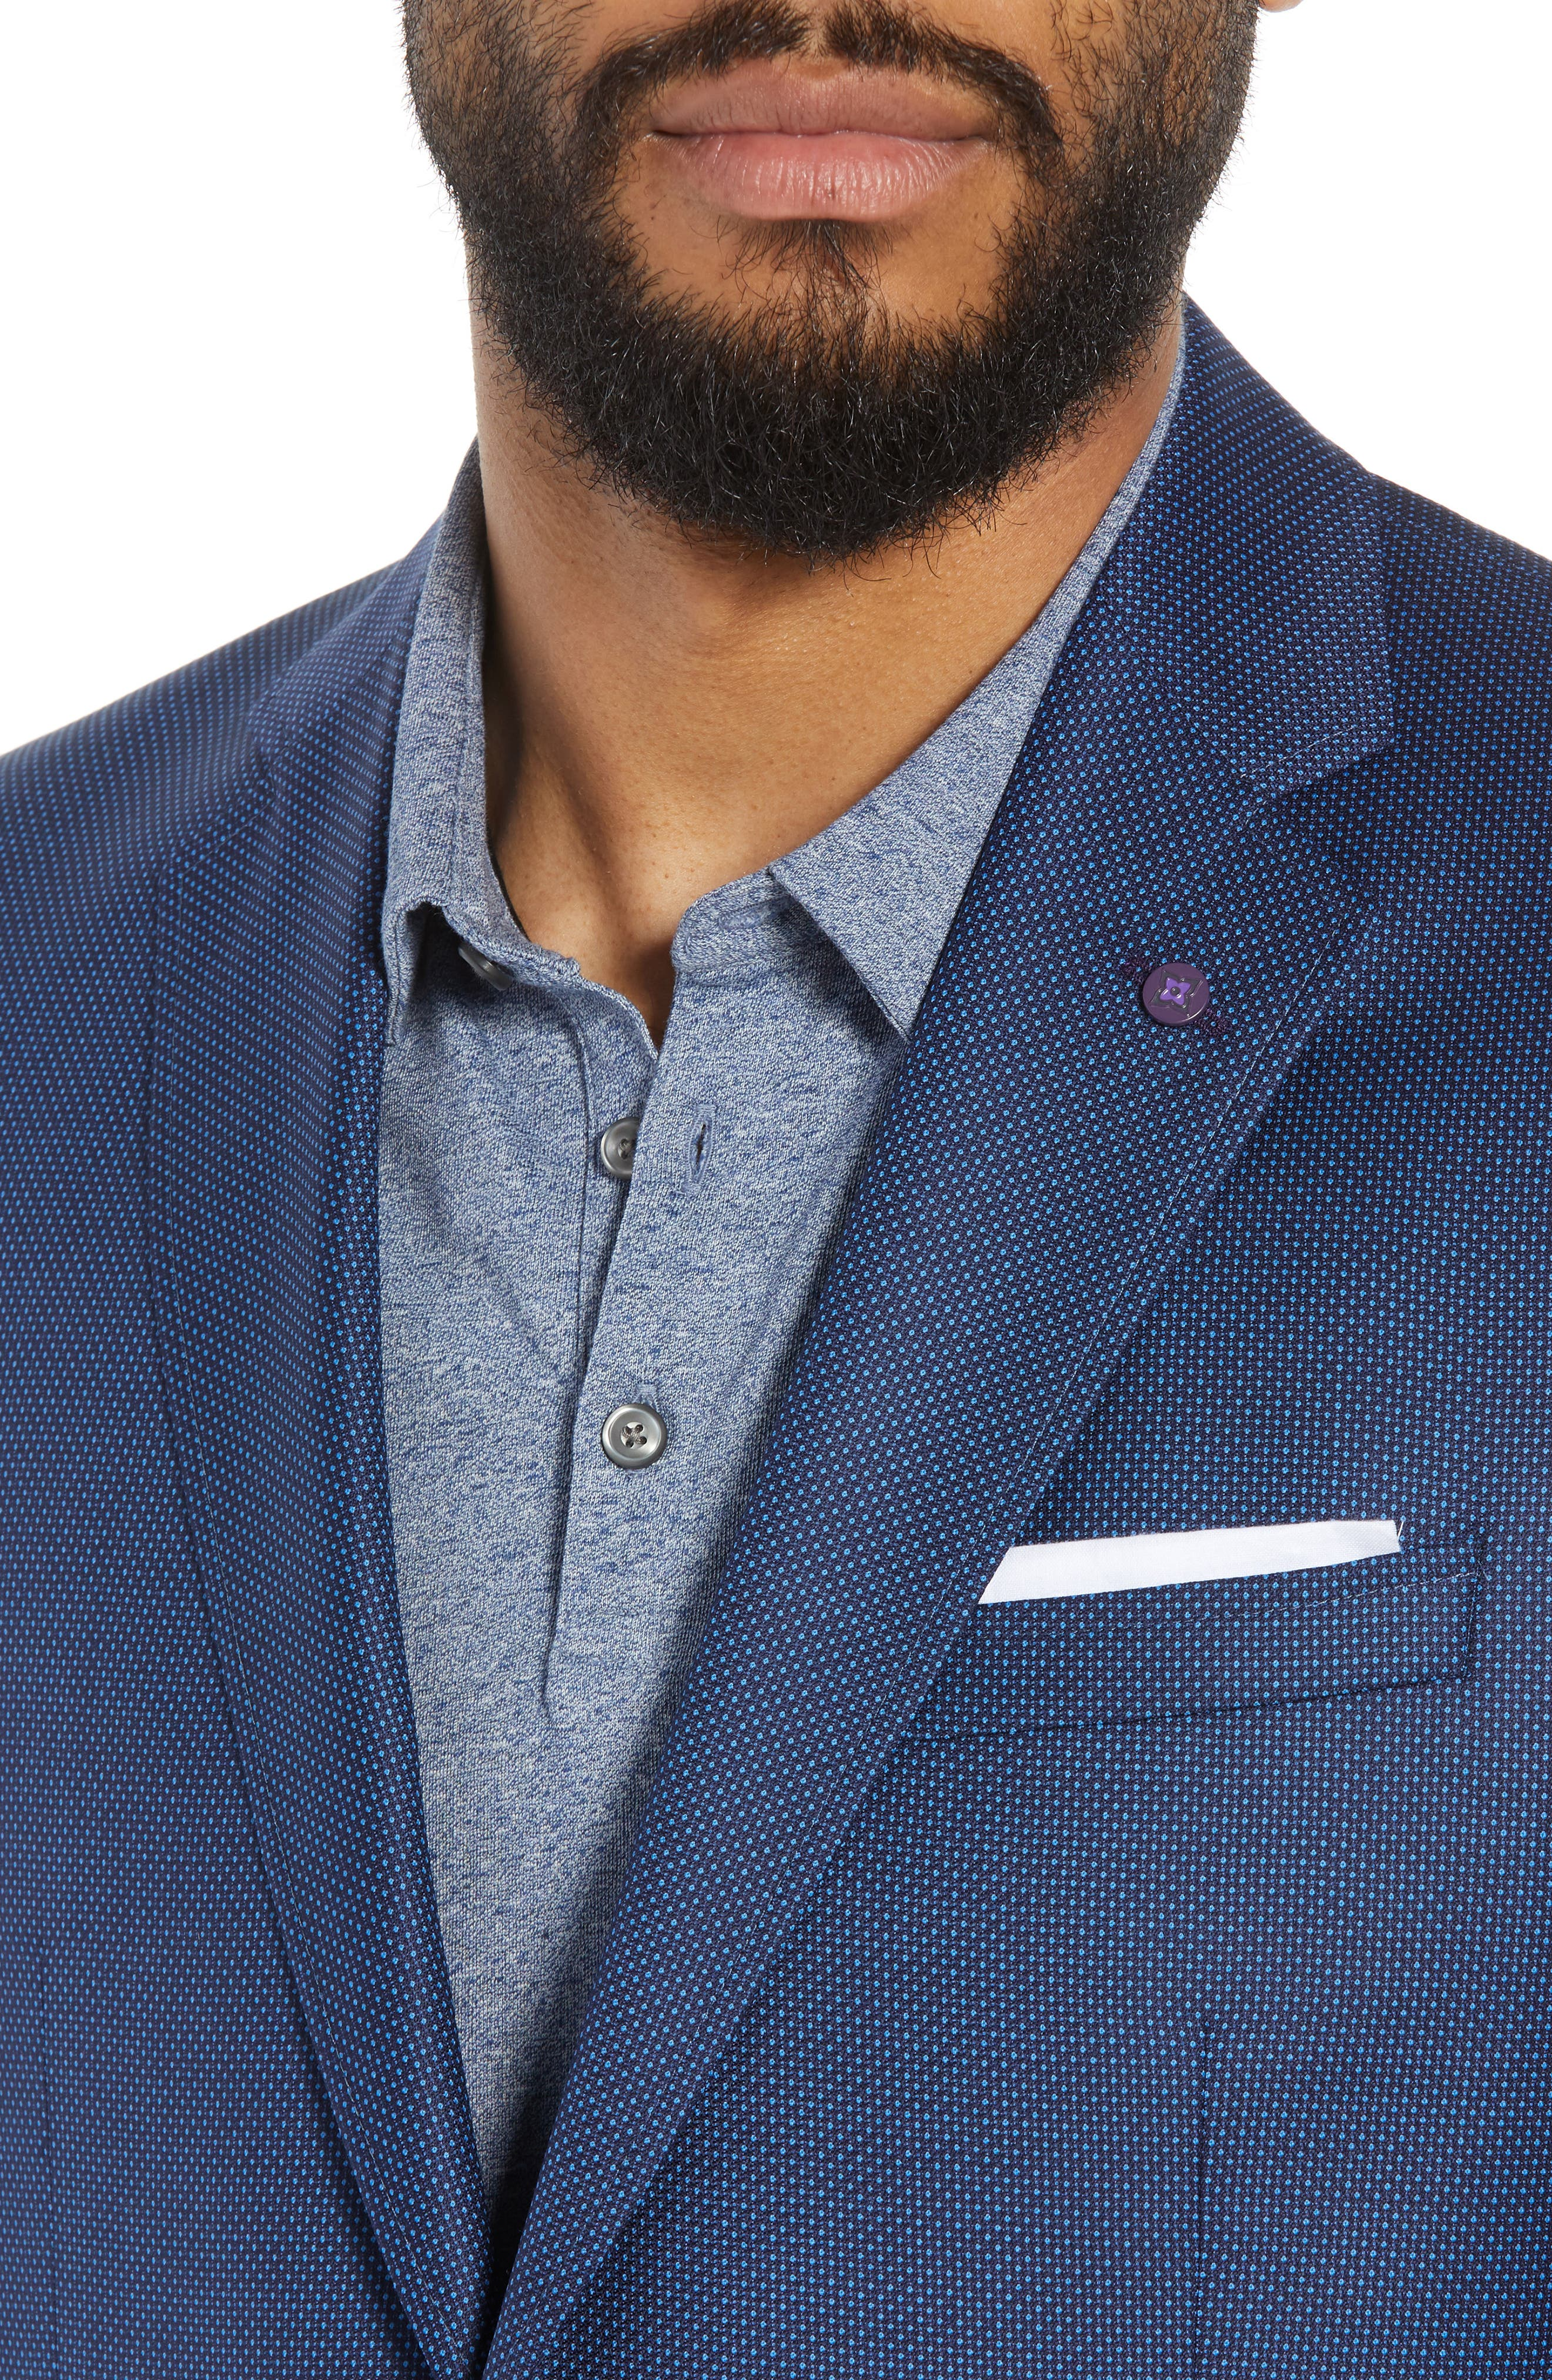 Jay Trim Fit Microdot Wool Sport Coat,                             Alternate thumbnail 4, color,                             Blue